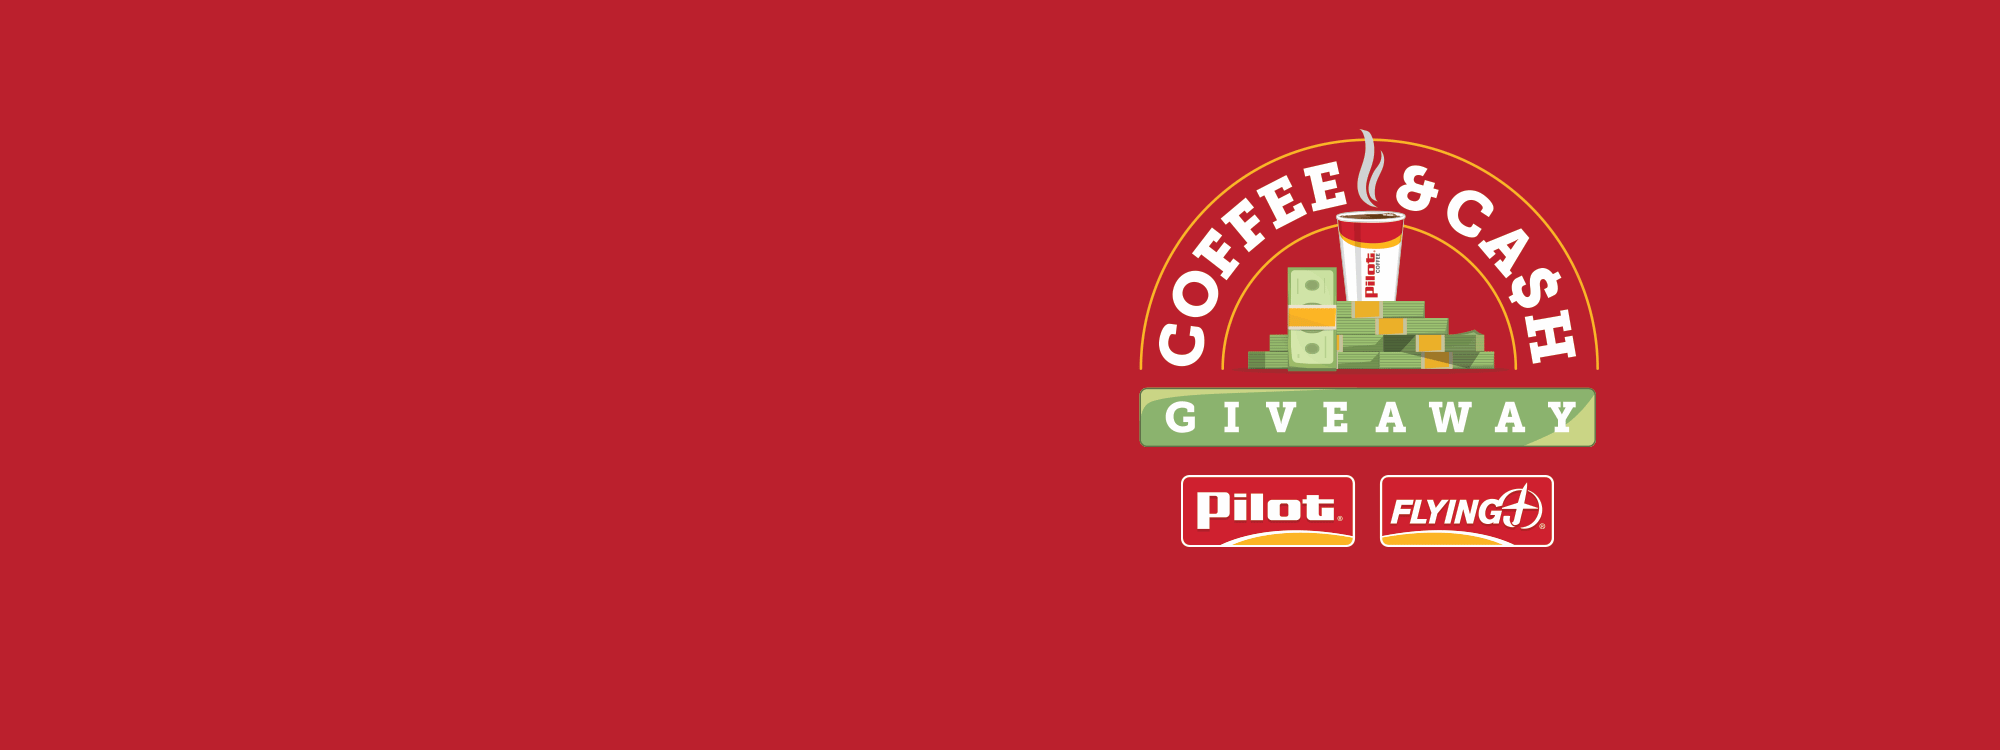 Pilot Flying J Coffee & Cash Giveaway